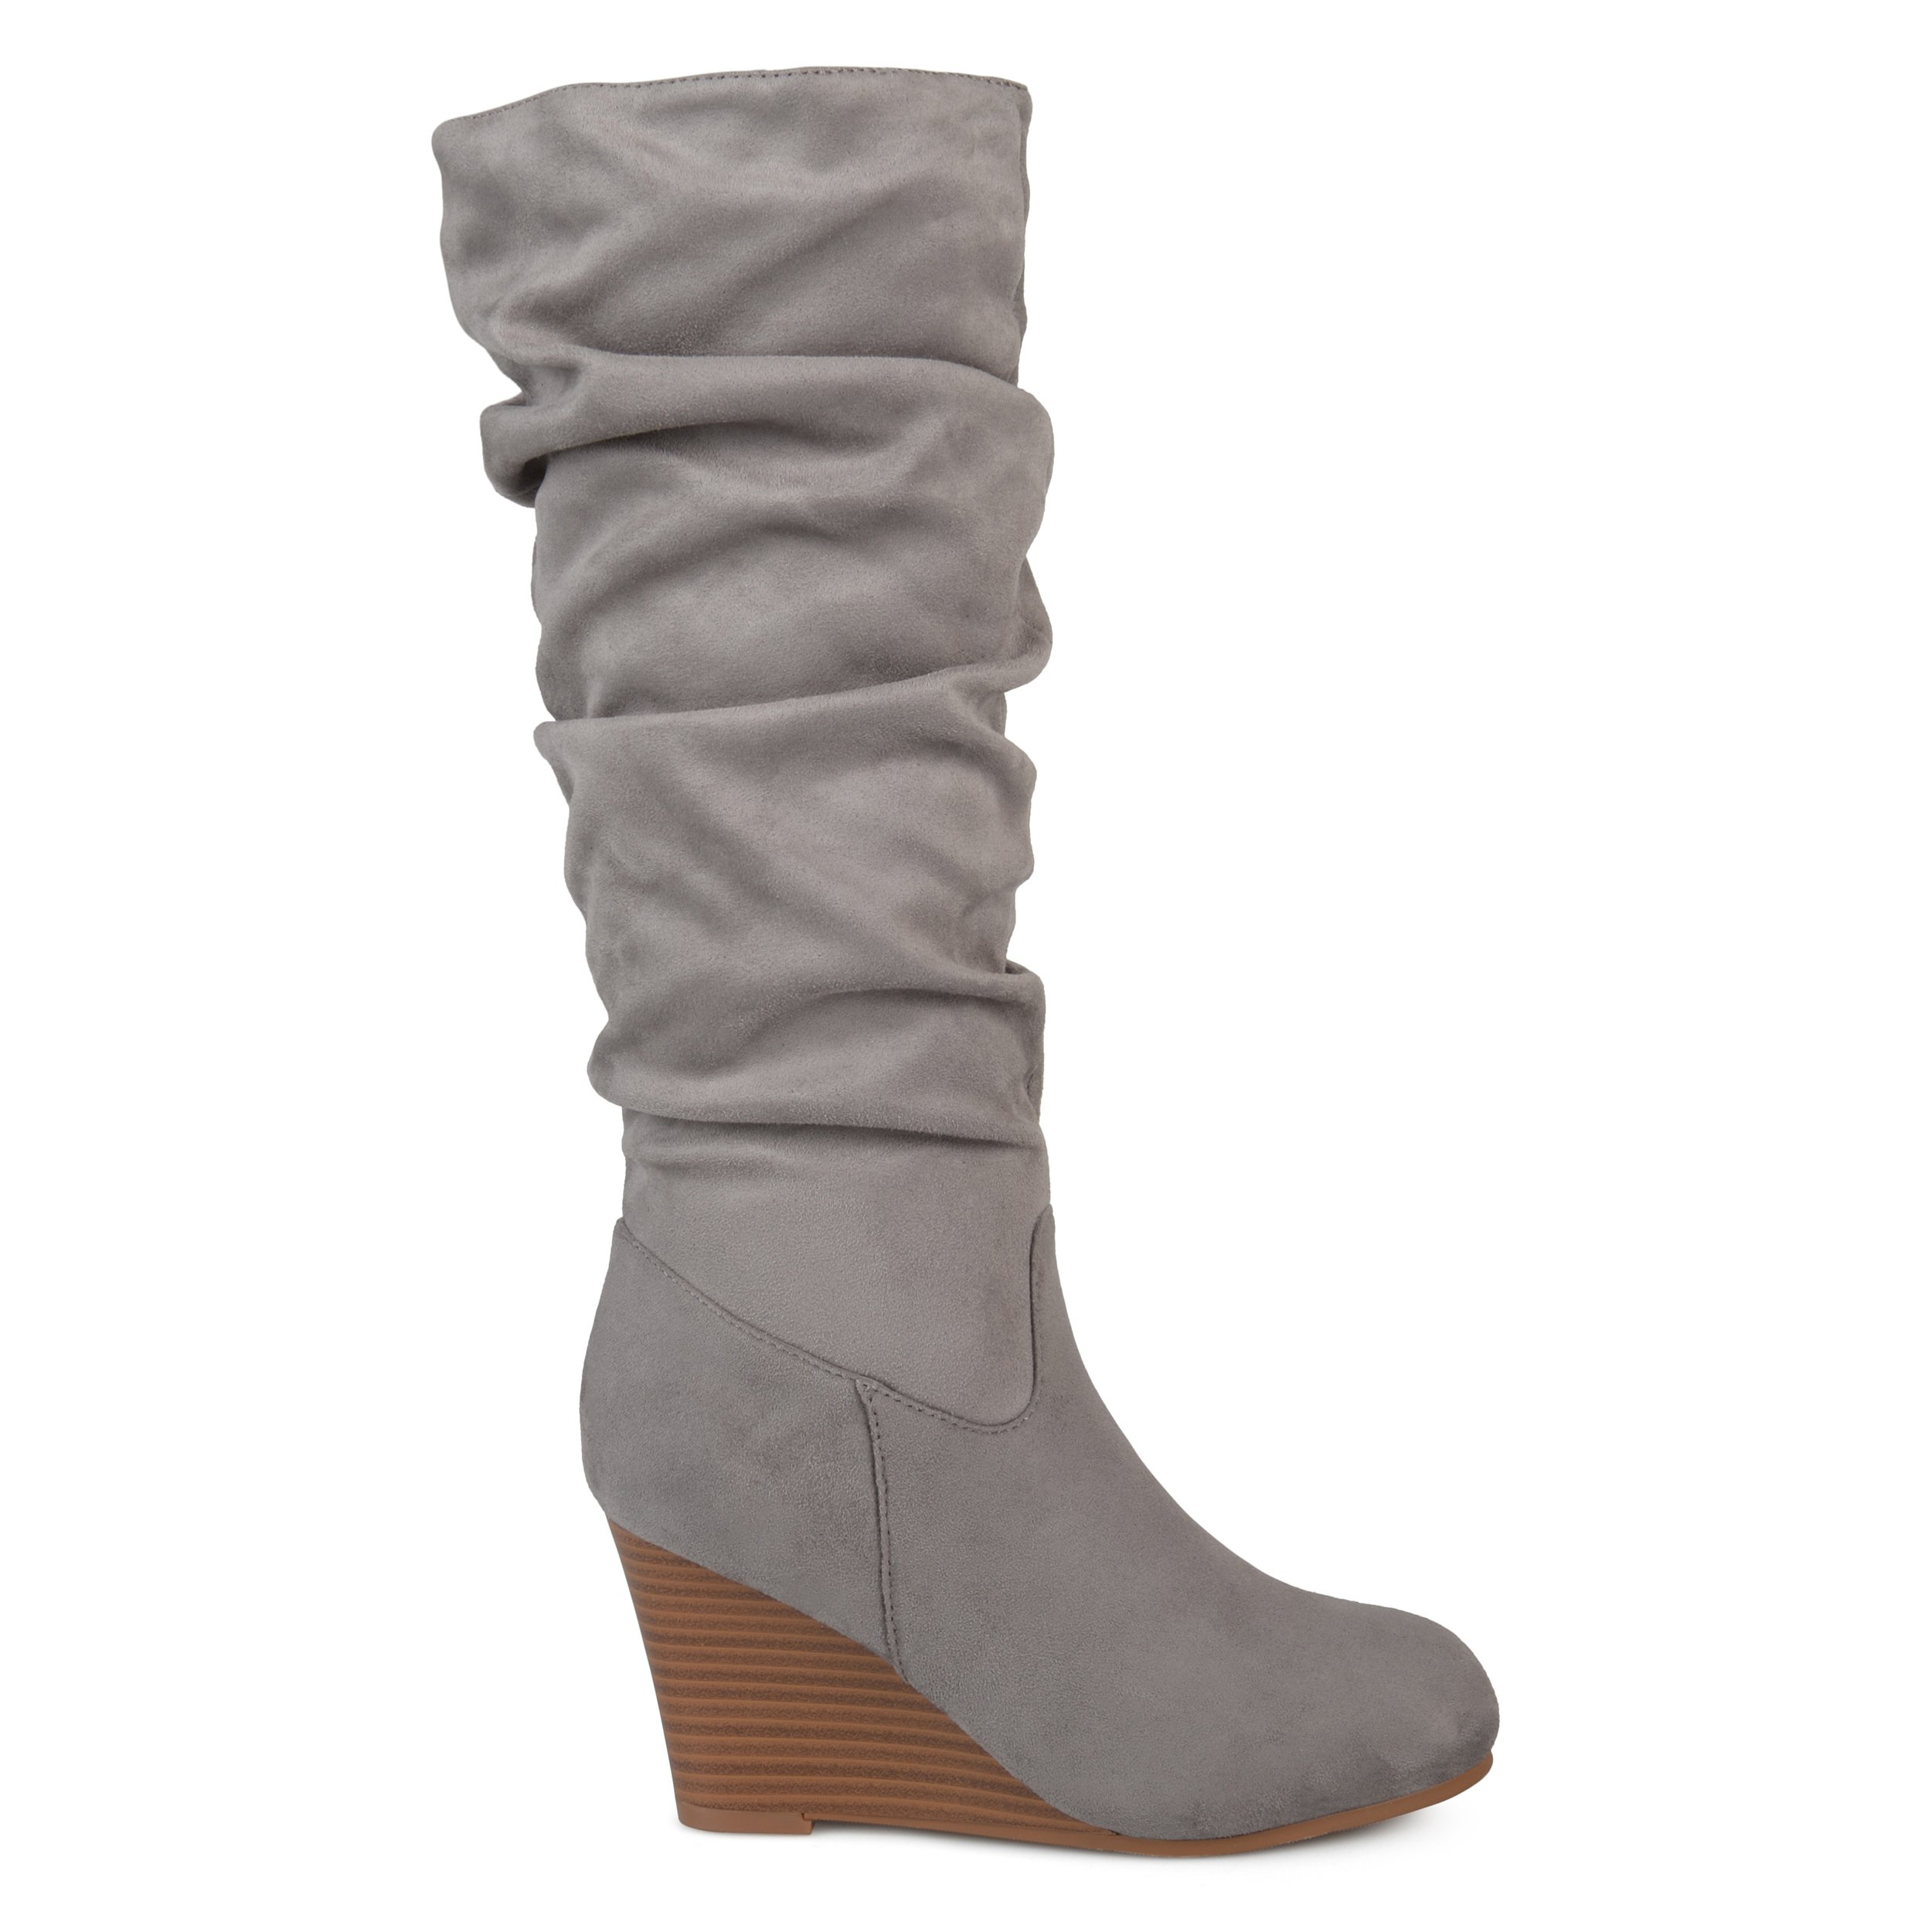 Brinley Co Womens Regular and Wide Calf Slouchy Faux Suede Mid-Calf Wedge Boots Grey, 9 Wide Calf US